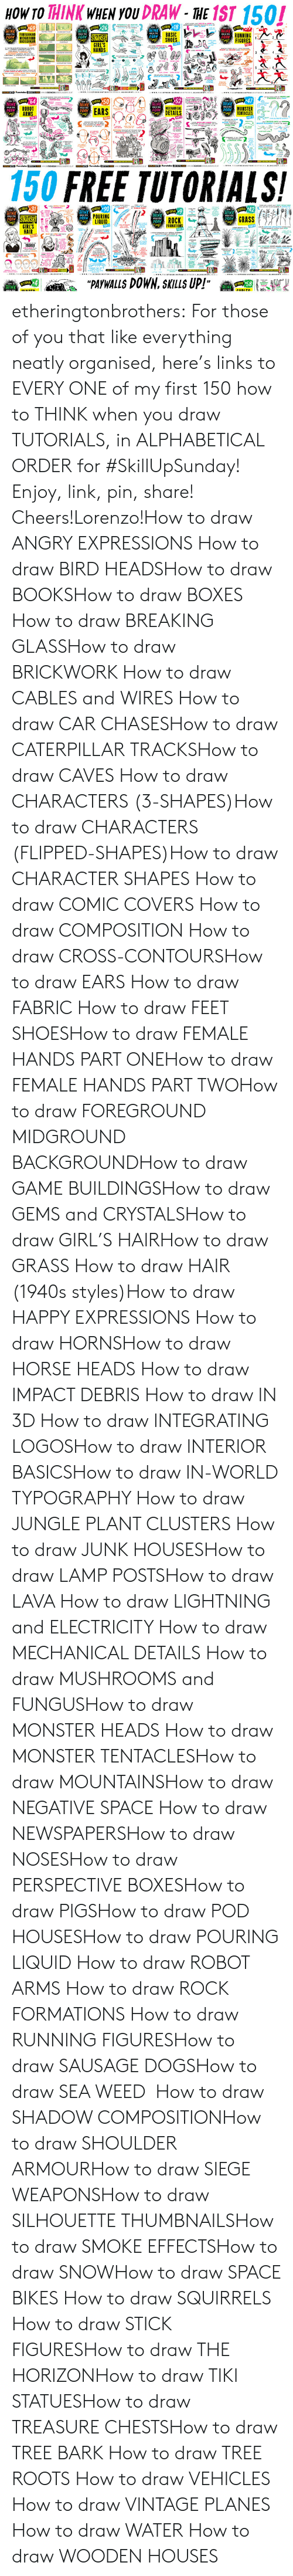 """dachshund: HOW TO THINK WHEN YOU DRAW -THE 1ST 1501  BASIC  SHOES  RUNNING  ROBOT  ARMS  EARS  HINK  DRAW  MONSTER  TENTACLES  DETAILS  150 FREE TUTORIALS!  31  90  GRASS I  DRAW  ROCK  FORMATIONS  e  PAY ALLS DOWN, SKILLS UP!""""  he  wre  58  i  il etheringtonbrothers: For those of you that like everything neatly organised, here's links to EVERY ONE of my first 150 how to THINK when you draw TUTORIALS, in ALPHABETICAL ORDER for #SkillUpSunday! Enjoy, link, pin, share! Cheers!Lorenzo!How to draw ANGRY EXPRESSIONS How to draw BIRD HEADSHow to draw BOOKSHow to draw BOXES  How to draw BREAKING GLASSHow to draw BRICKWORK How to draw CABLES and WIRES  How to draw CAR CHASESHow to draw CATERPILLAR TRACKSHow to draw CAVES How to draw CHARACTERS (3-SHAPES)How to draw CHARACTERS (FLIPPED-SHAPES)How to draw CHARACTER SHAPES How to draw COMIC COVERS How to draw COMPOSITION How to draw CROSS-CONTOURSHow to draw EARS How to draw FABRIC How to draw FEET  SHOESHow to draw FEMALE HANDS PART ONEHow to draw FEMALE HANDS PART TWOHow to draw FOREGROUND MIDGROUND BACKGROUNDHow to draw GAME BUILDINGSHow to draw GEMS and CRYSTALSHow to draw GIRL'S HAIRHow to draw GRASS How to draw HAIR (1940s styles)How to draw HAPPY EXPRESSIONS How to draw HORNSHow to draw HORSE HEADS How to draw IMPACT DEBRIS How to draw IN 3D How to draw INTEGRATING LOGOSHow to draw INTERIOR BASICSHow to draw IN-WORLD TYPOGRAPHY How to draw JUNGLE PLANT CLUSTERS How to draw JUNK HOUSESHow to draw LAMP POSTSHow to draw LAVA How to draw LIGHTNING and ELECTRICITY How to draw MECHANICAL DETAILS How to draw MUSHROOMS and FUNGUSHow to draw MONSTER HEADS How to draw MONSTER TENTACLESHow to draw MOUNTAINSHow to draw NEGATIVE SPACE  How to draw NEWSPAPERSHow to draw NOSESHow to draw PERSPECTIVE BOXESHow to draw PIGSHow to draw POD HOUSESHow to draw POURING LIQUID  How to draw ROBOT ARMS  How to draw ROCK FORMATIONS How to draw RUNNING FIGURESHow to draw SAUSAGE DOGSHow to draw SEA WEED  How to draw SHADOW COMPOSITIONHow to draw S"""